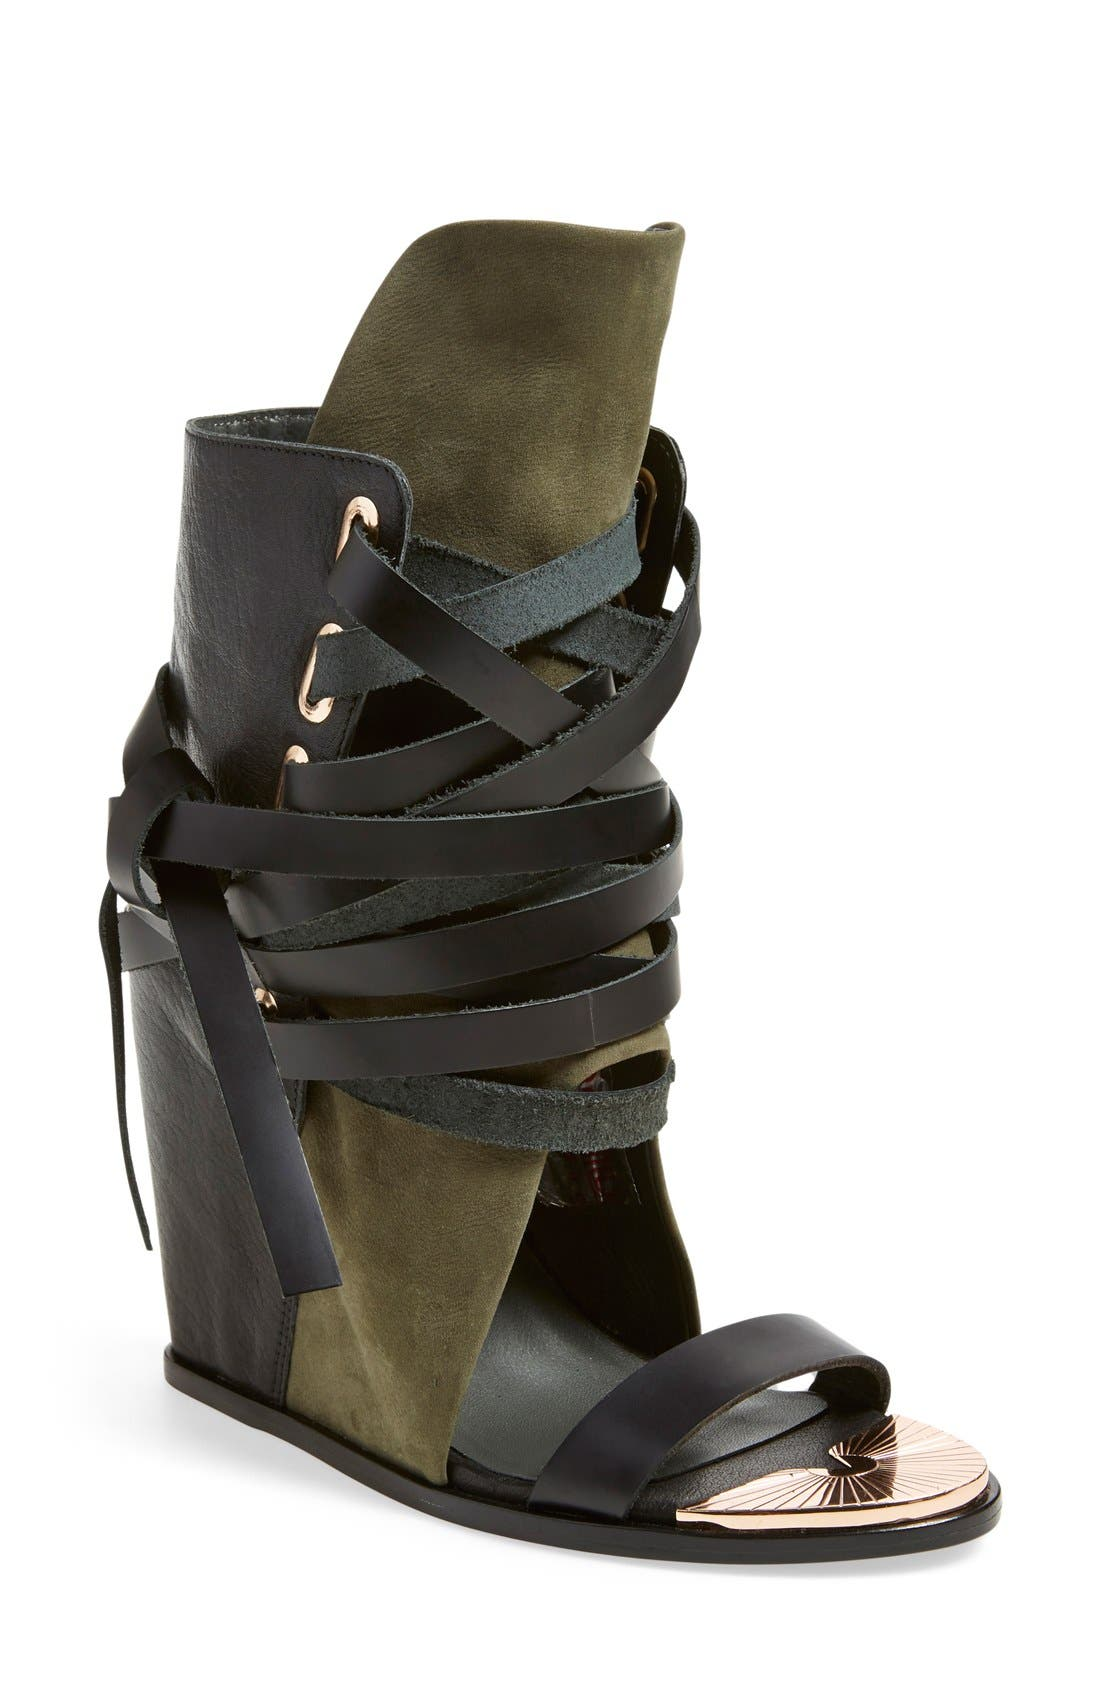 'Mount' Wedge Sandal,                             Main thumbnail 1, color,                             Black/ Cargo